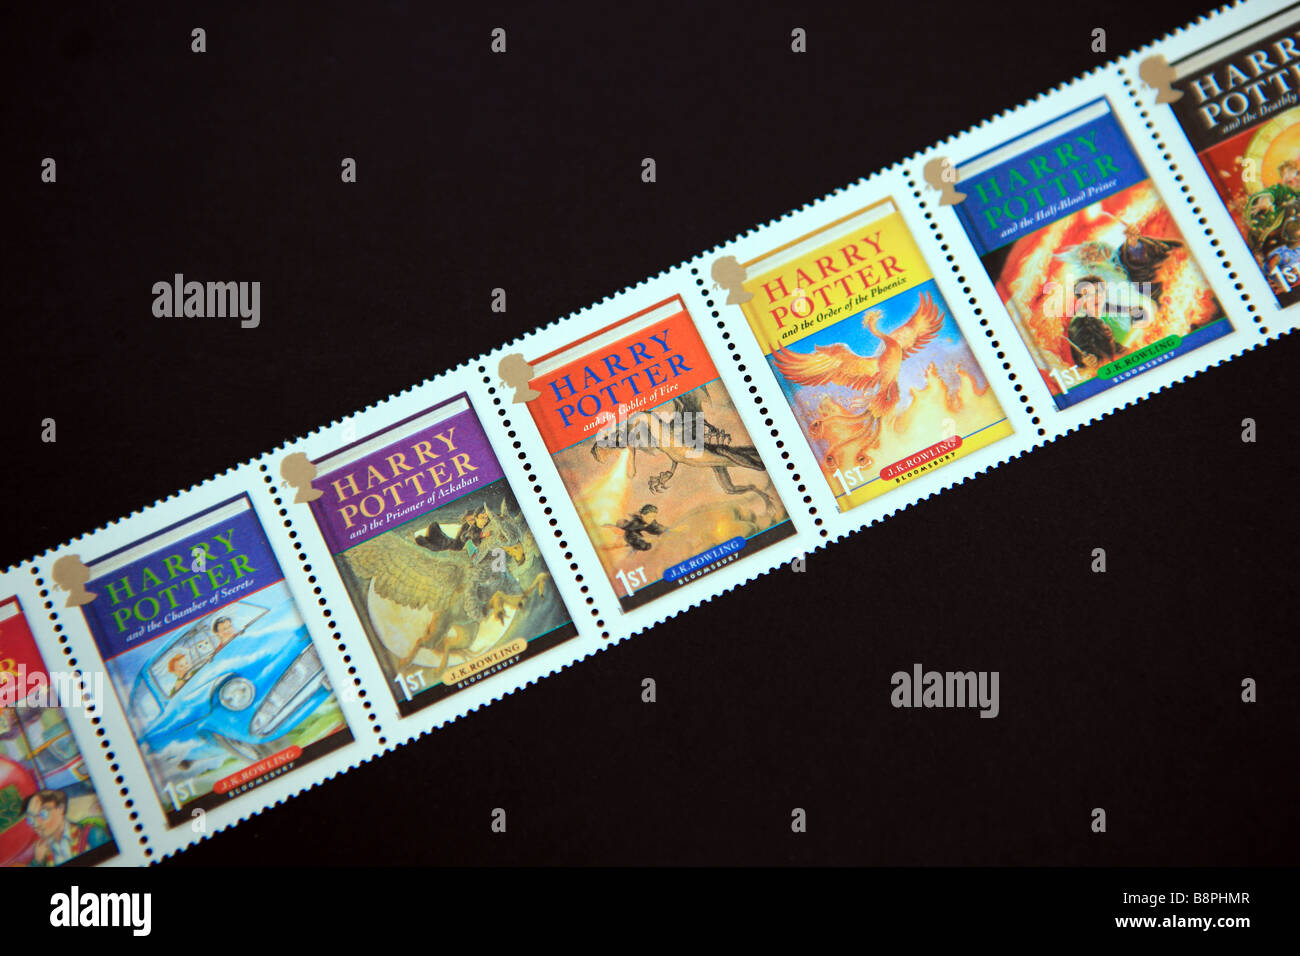 Harry Potter stamps - Stock Image